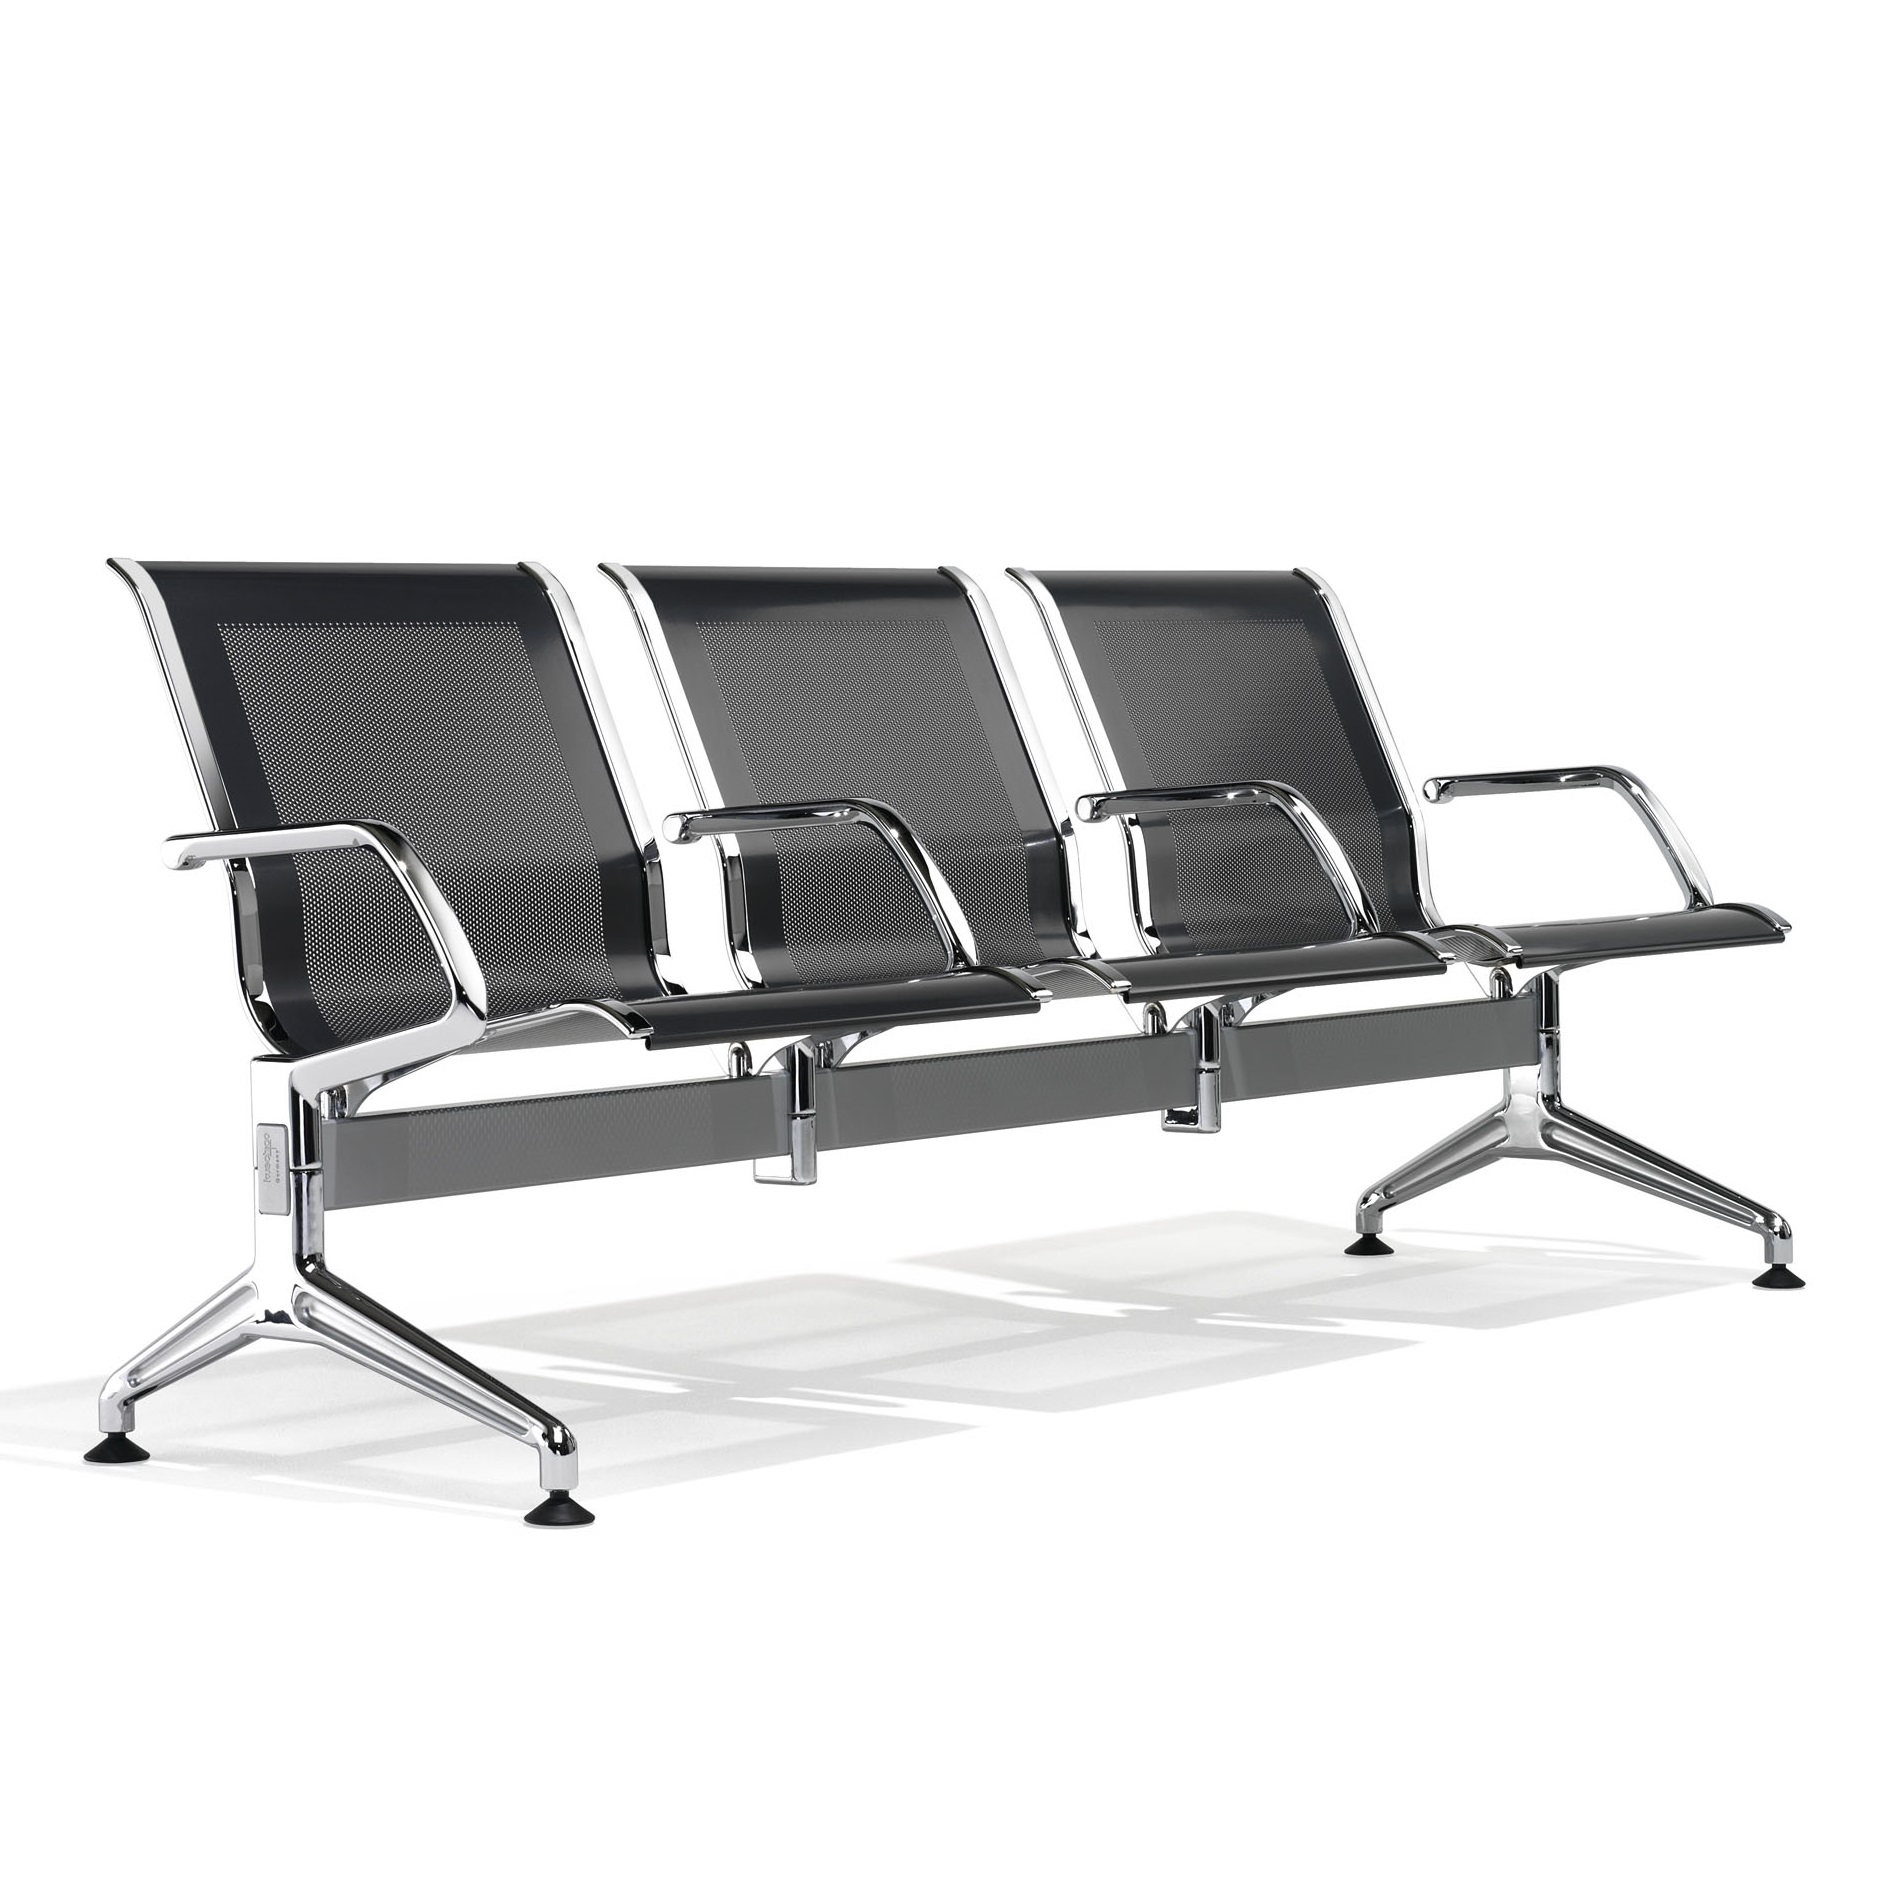 Series 7100 Bench (Seating)